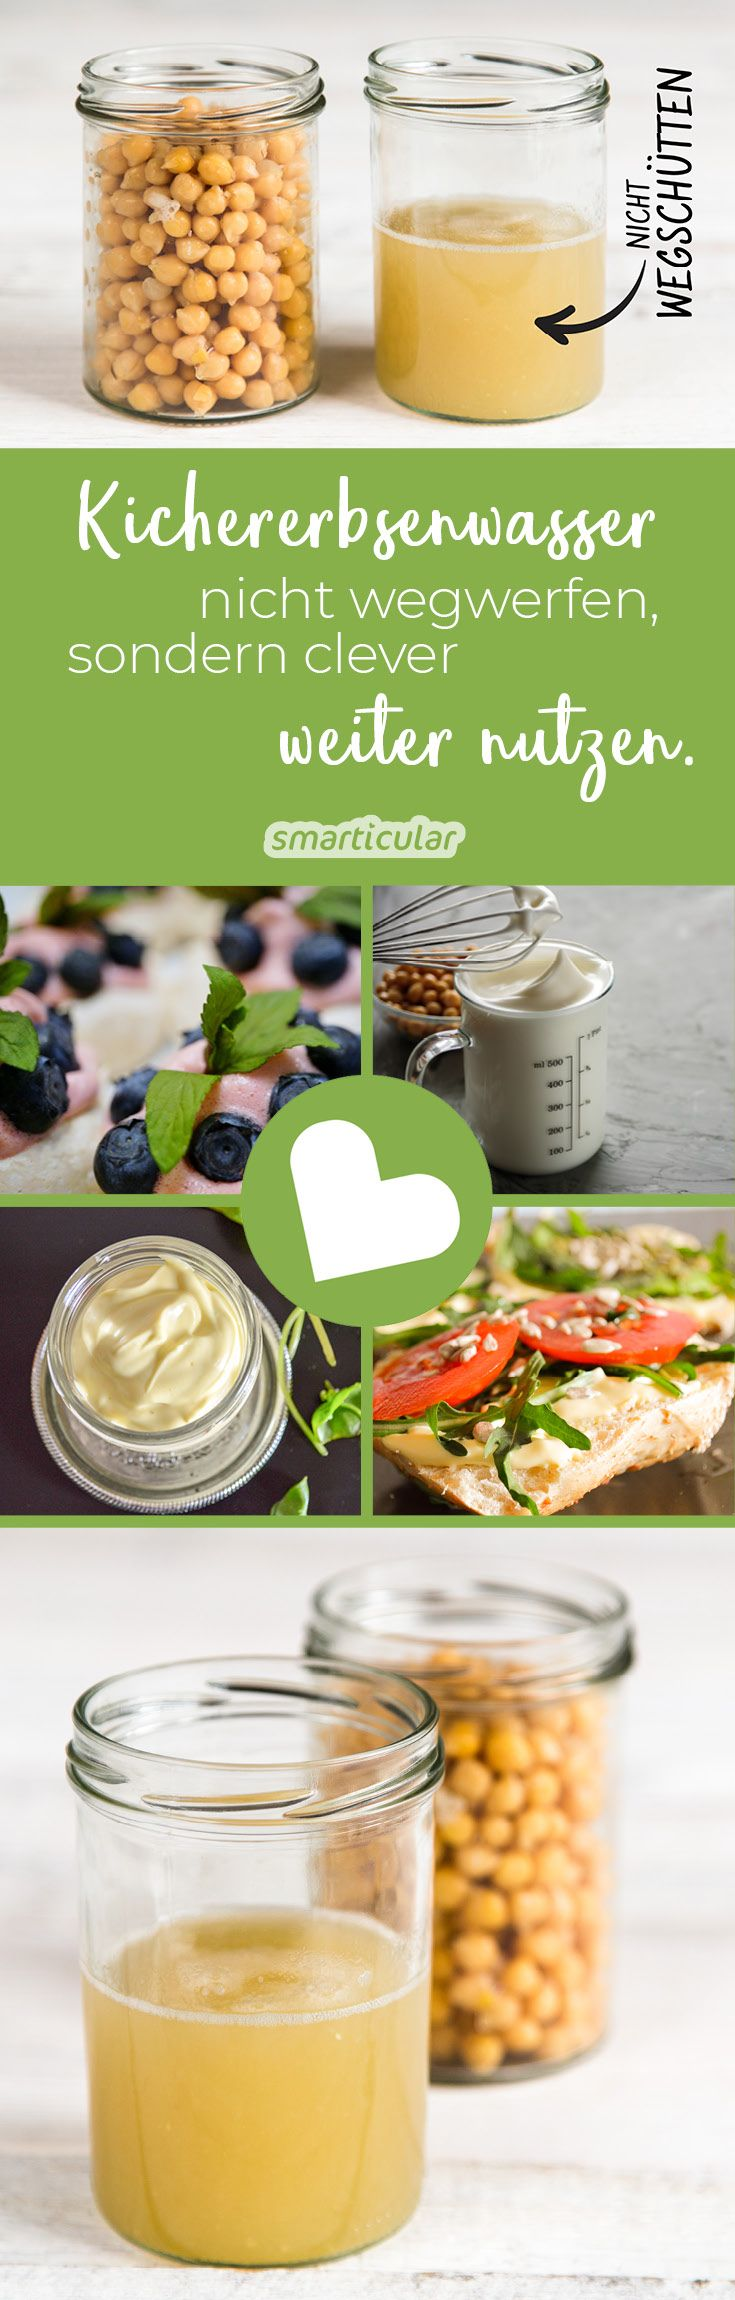 From chickpea water, many treats can be produced, for example May ...